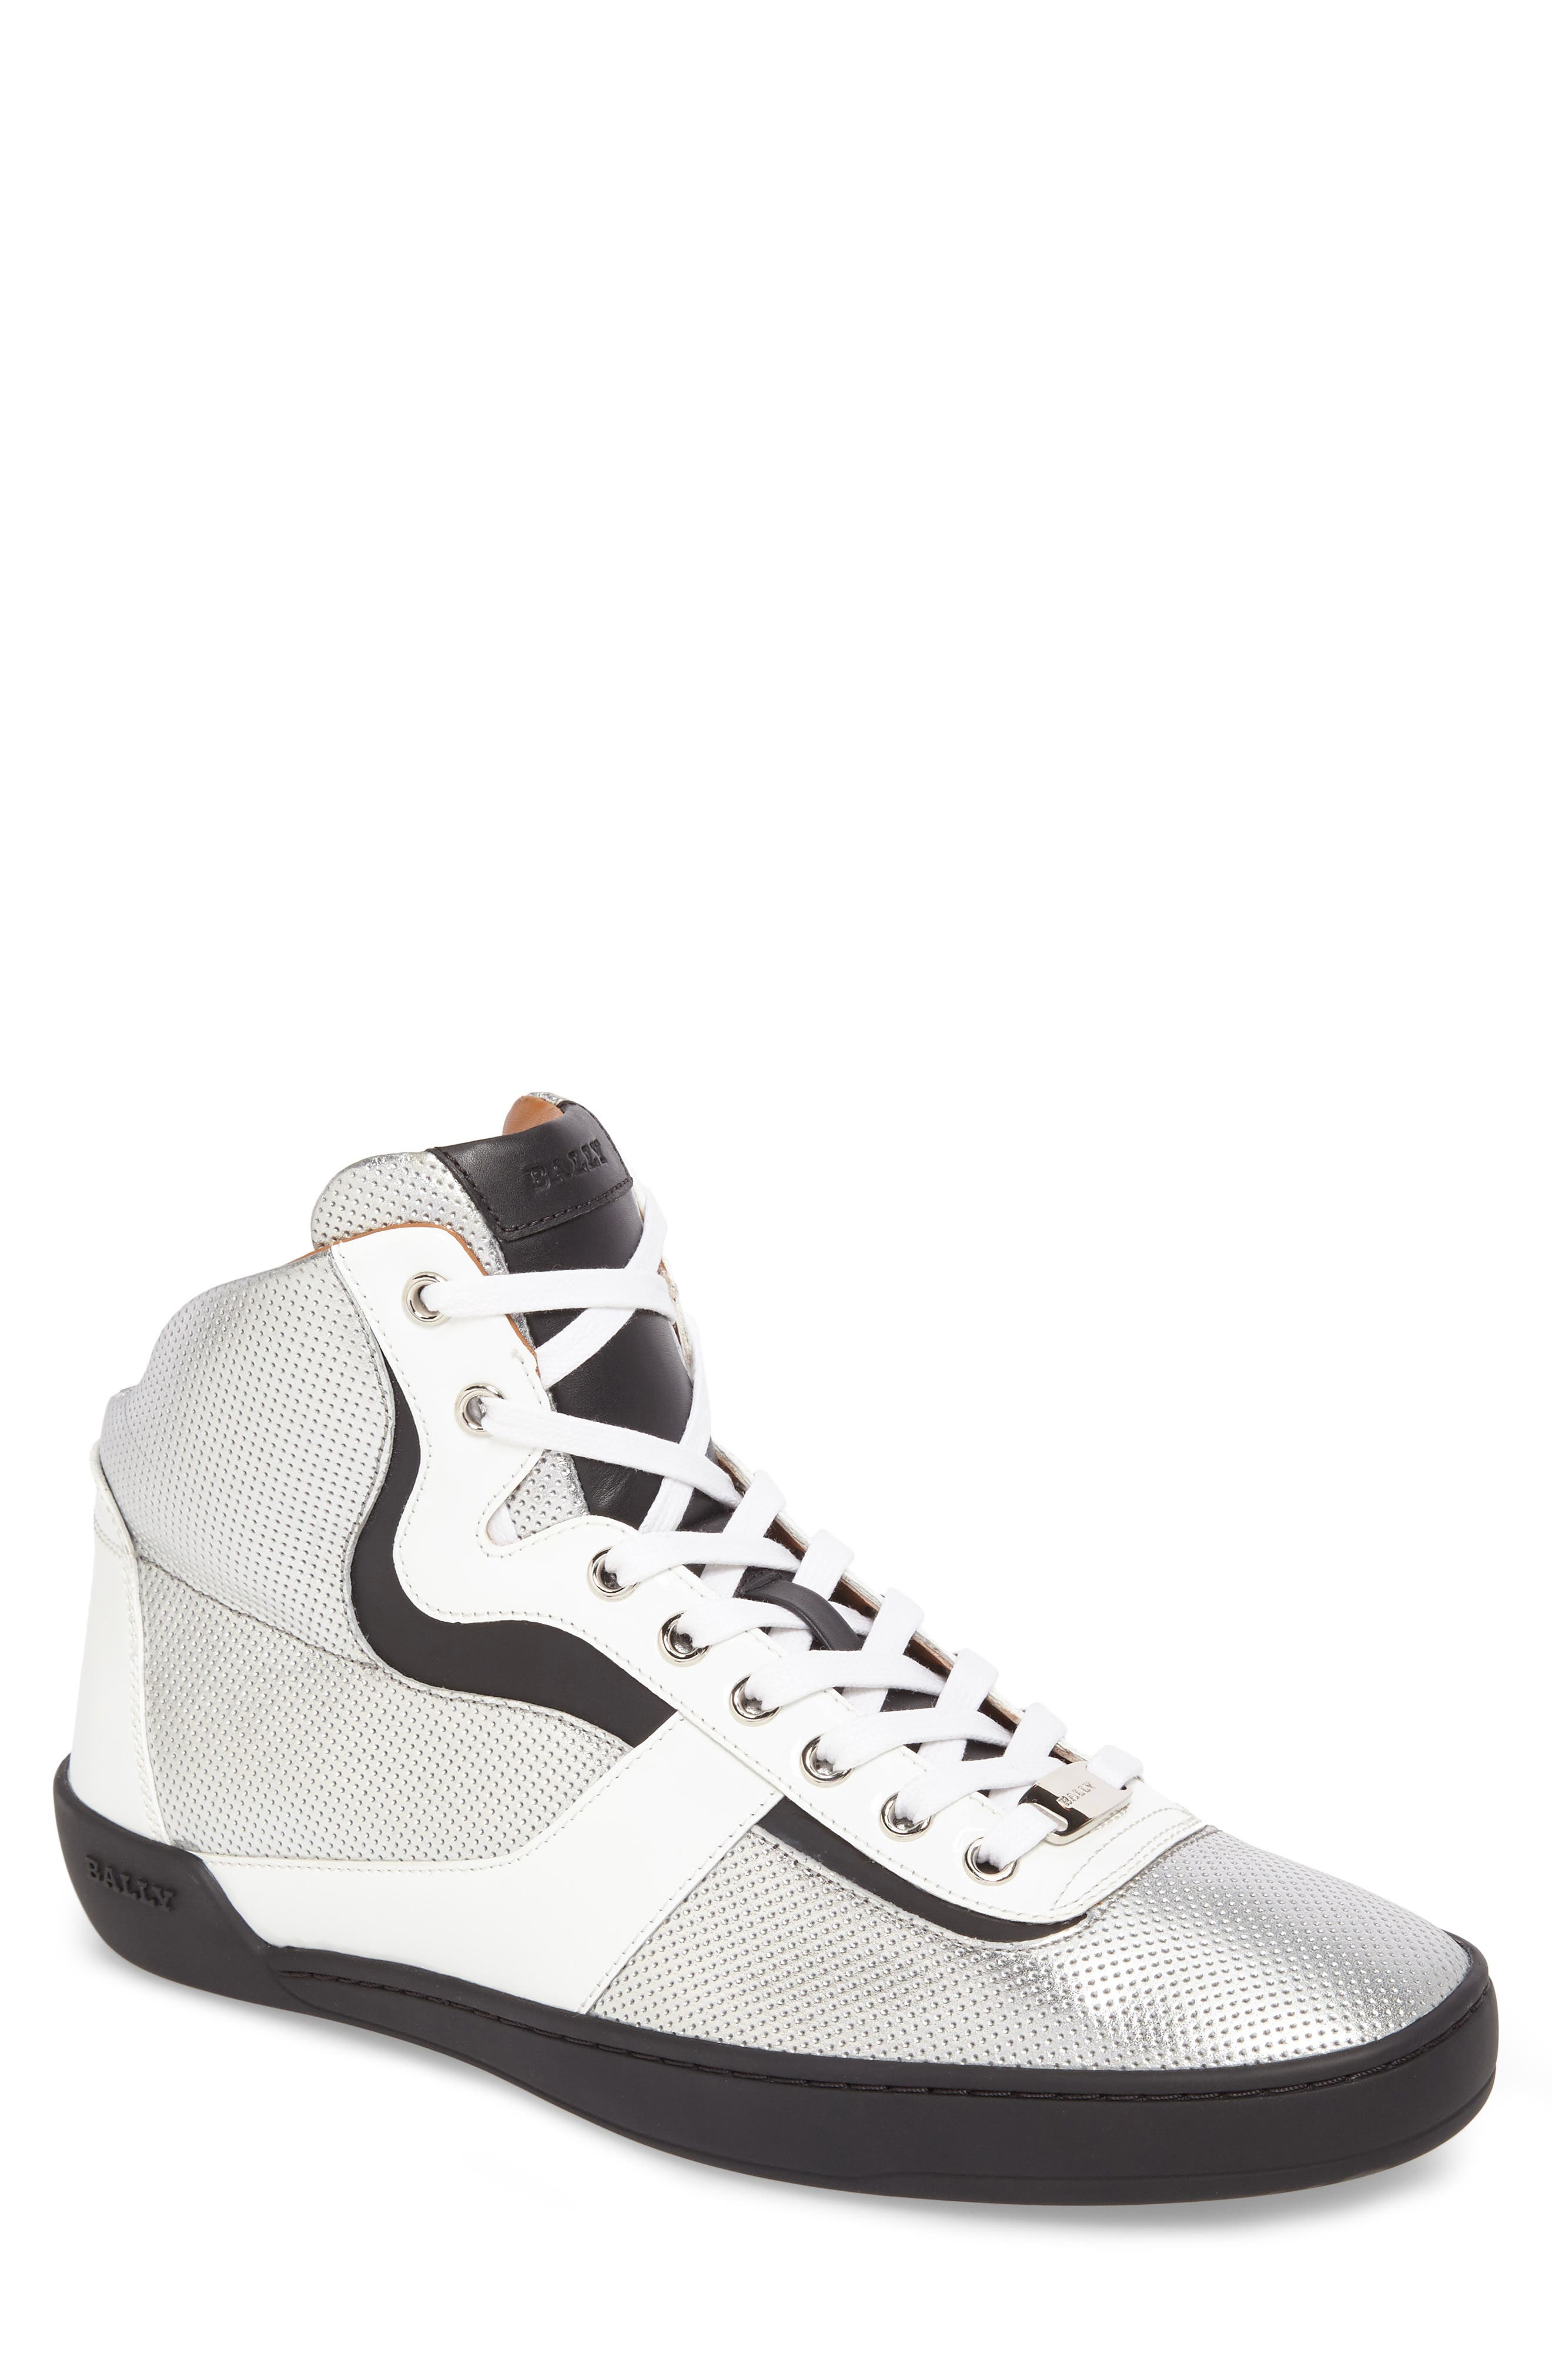 Eroy High Top Sneaker,                         Main,                         color, Silver